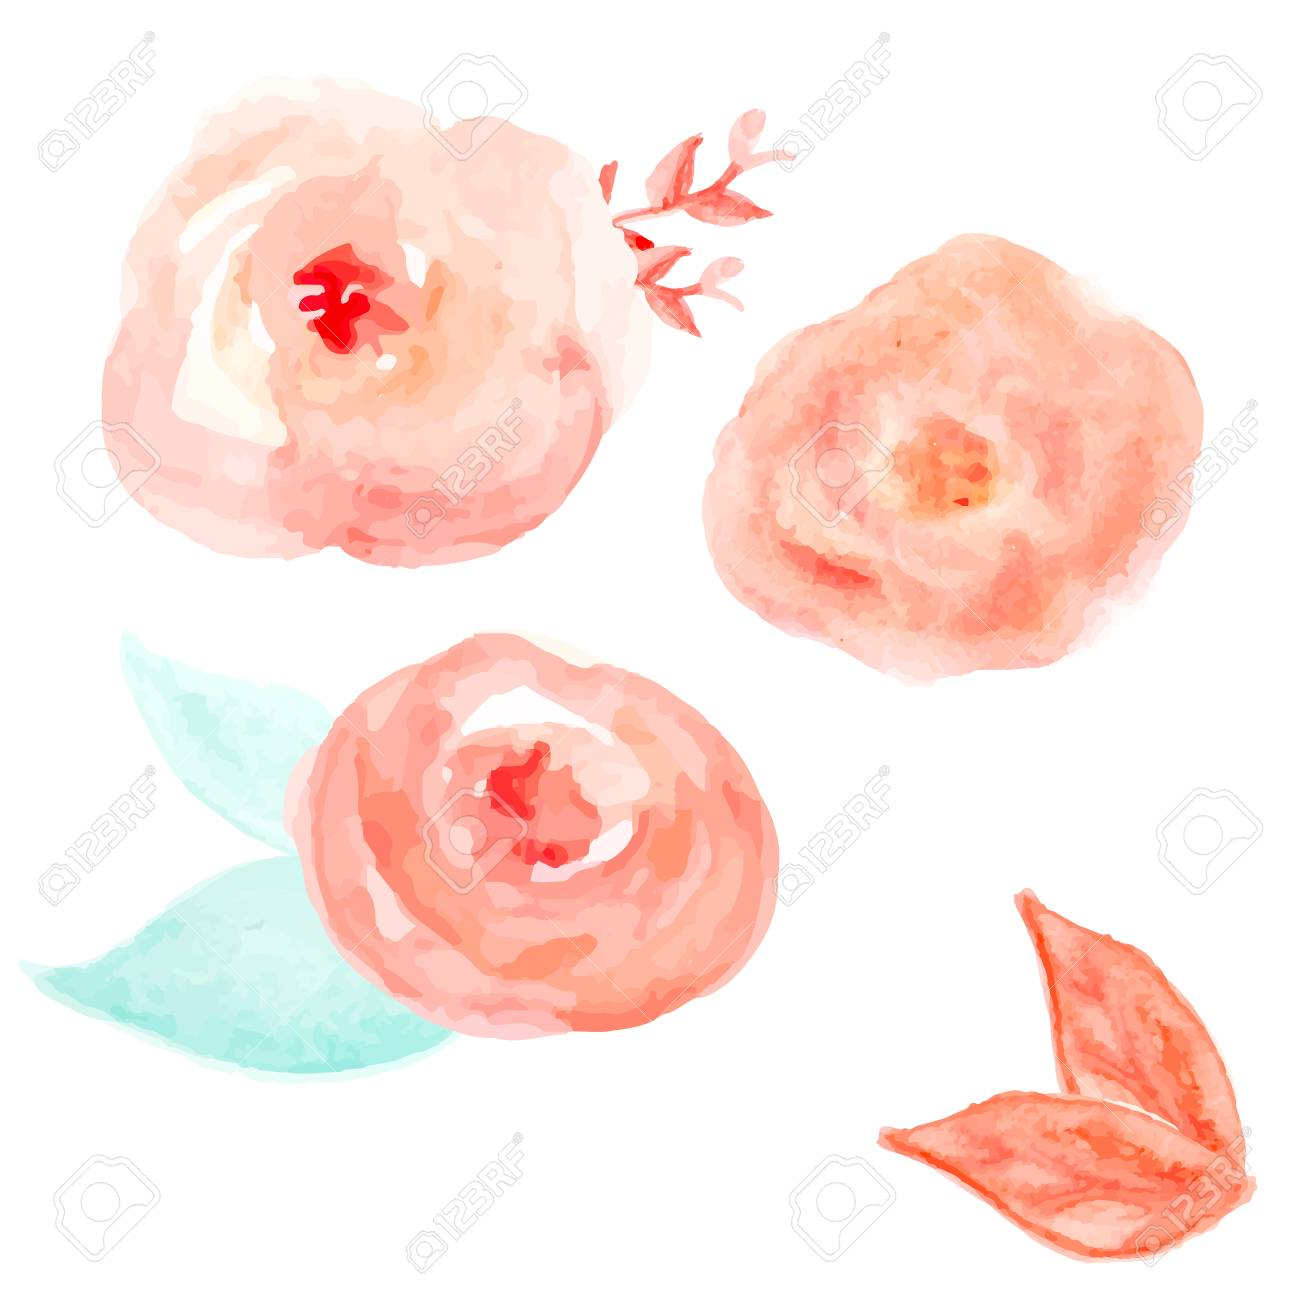 Watercolor Flower Vector. Round Watercolor Flowers. Abstract Flowers - 45817127